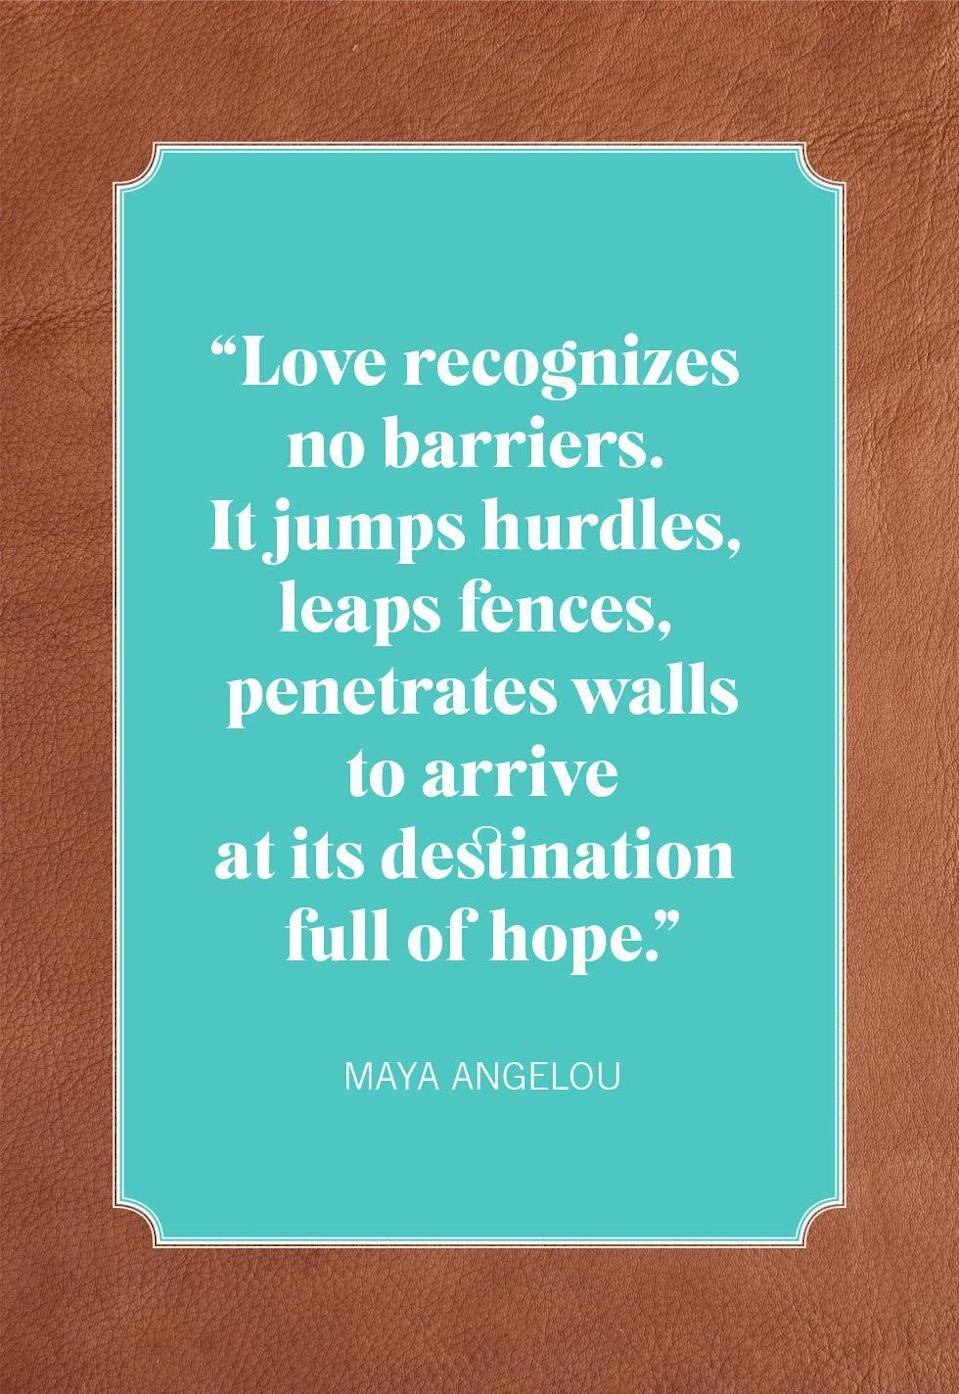 "<p>""Love recognizes no barriers. It jumps hurdles, leaps fences, penetrates walls to arrive at its destination full of hope.""</p>"